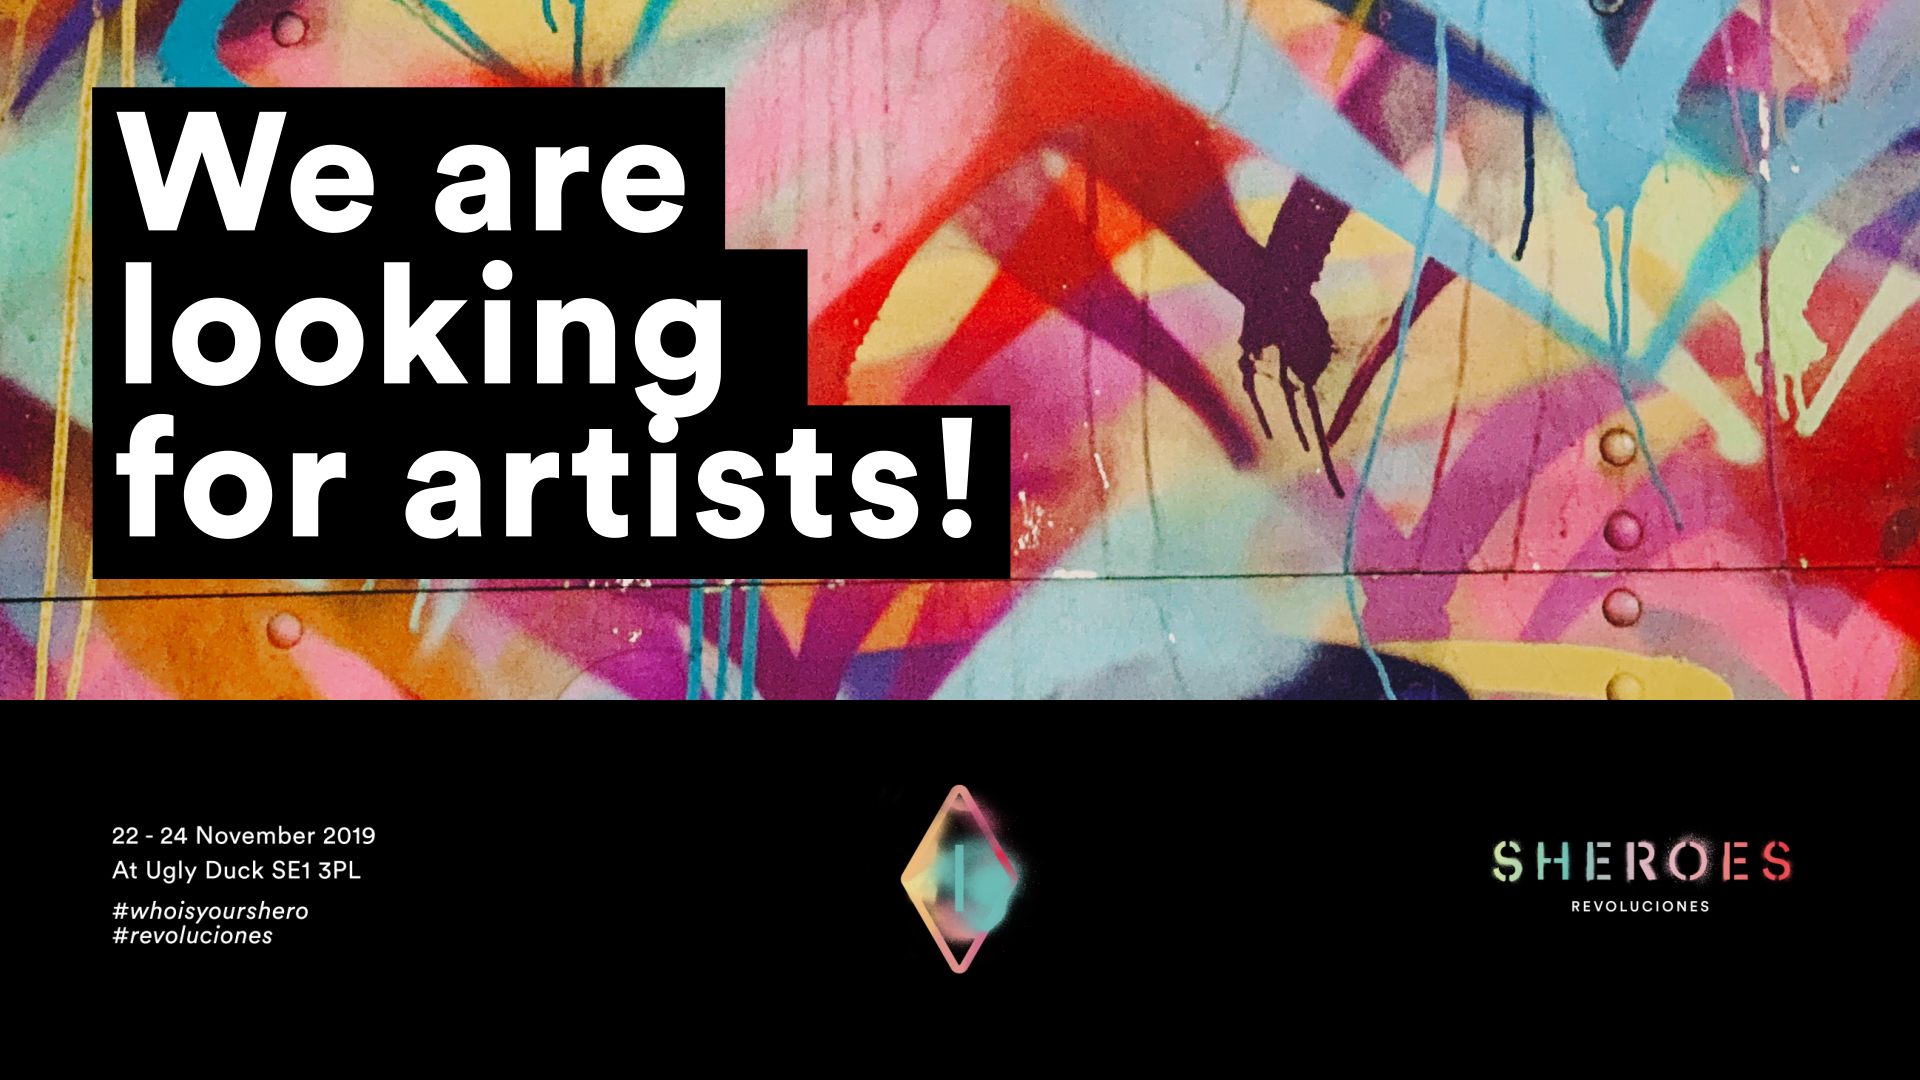 Sheroes artist Call out 2019